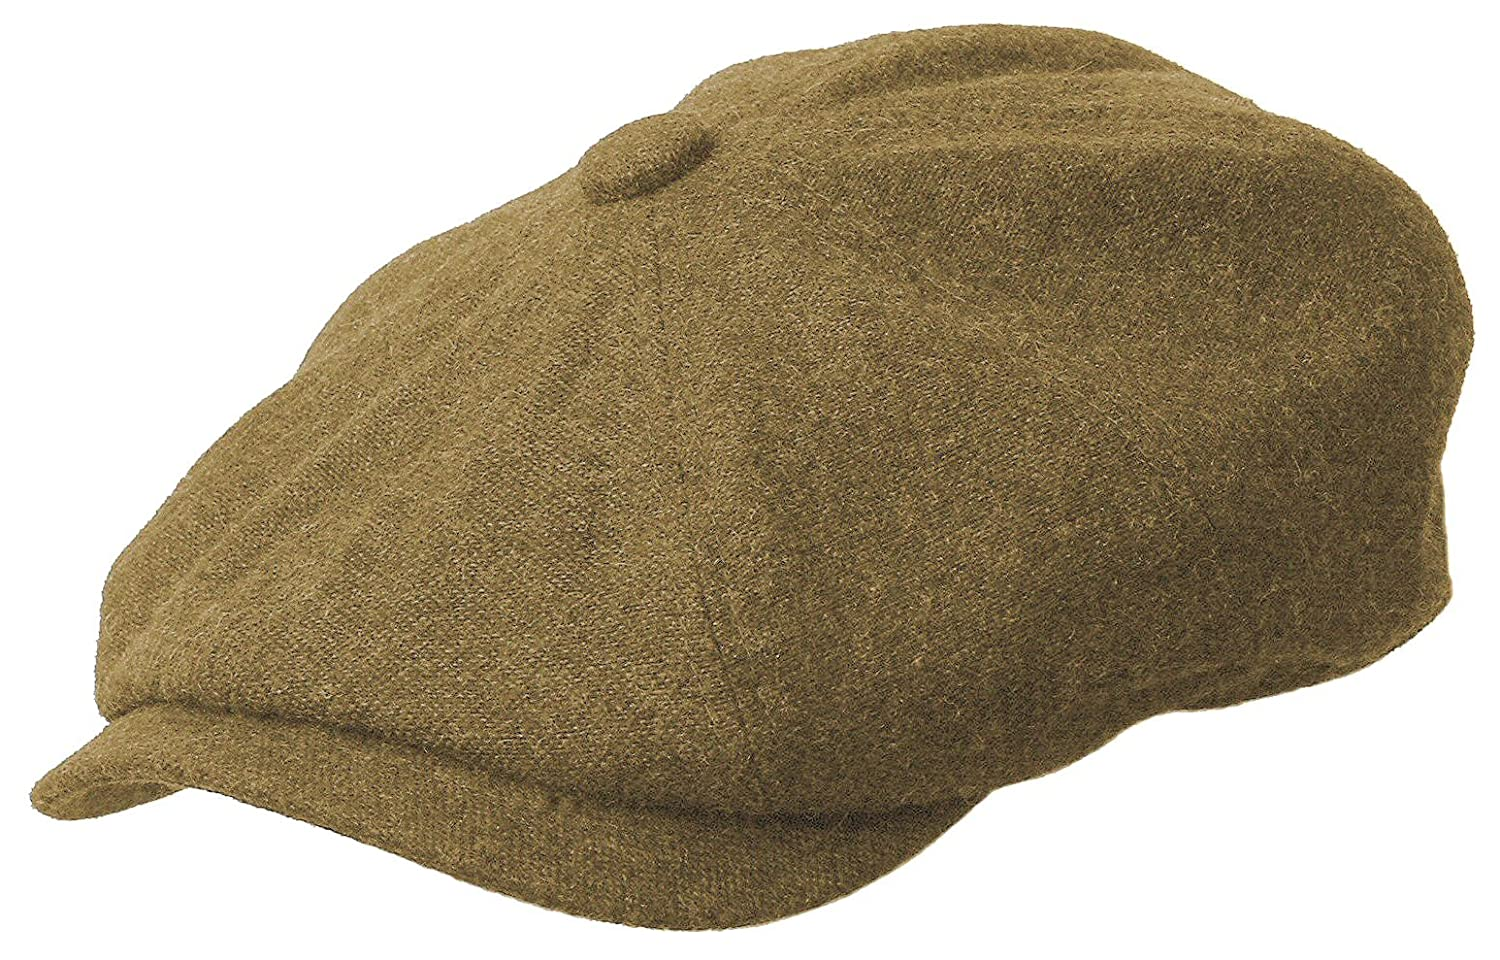 Men's Vintage Style Hats ROOSTER Wool Tweed Newsboy Gatsby Ivy Cap Golf Cabbie Driving Hat $35.00 AT vintagedancer.com